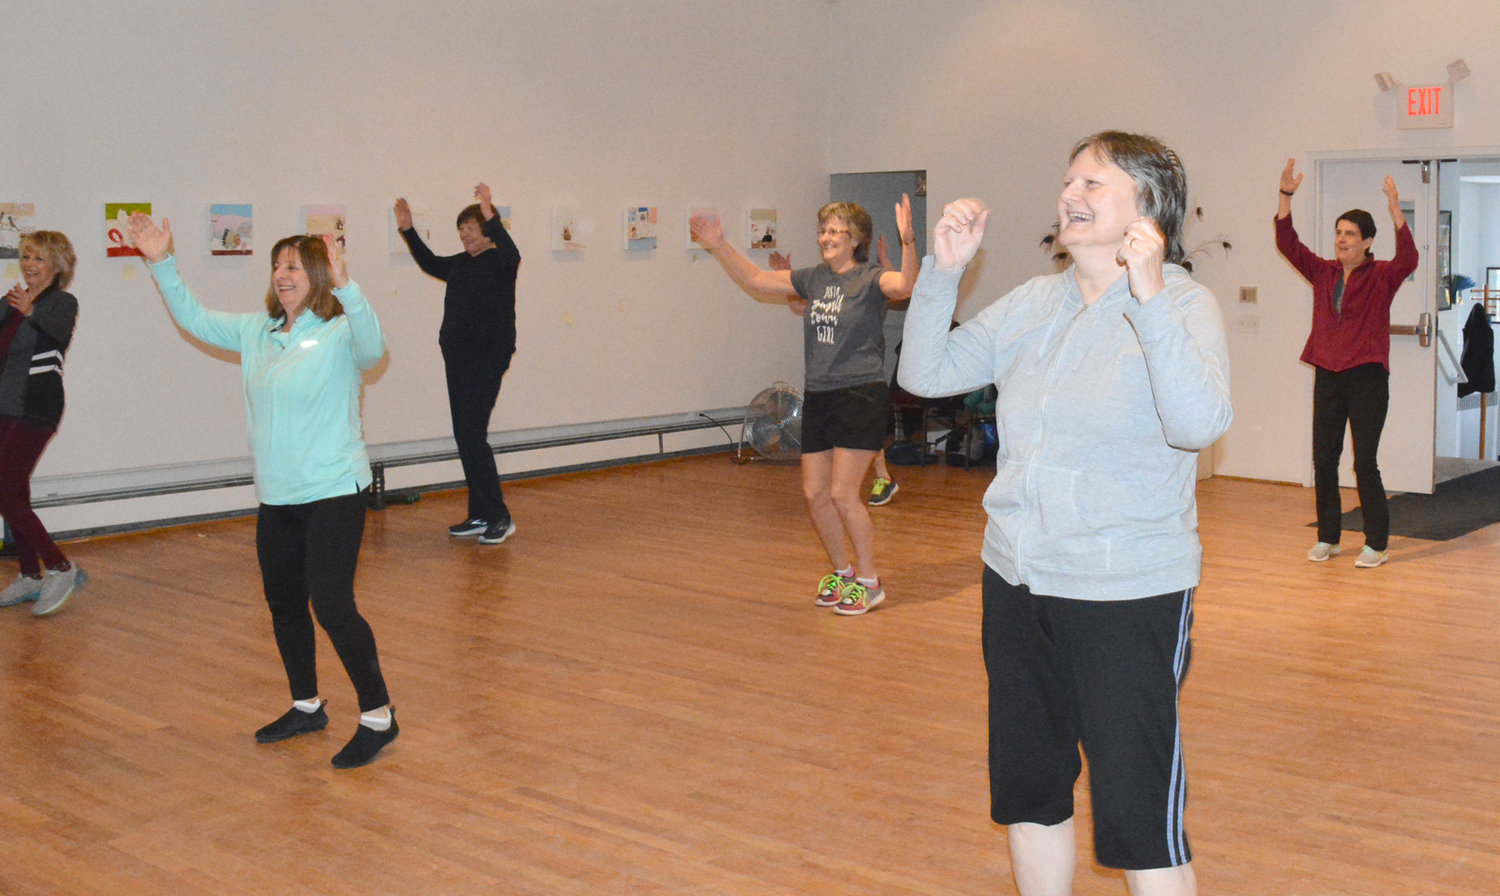 EXERCISE IN DISGUISE — Village of Clinton ladies love the Zumba Fitness classes at the Kirkland Art Center just across the street from the village green. The classes are held every Tuesday and Friday morning at 9:15 a.m.